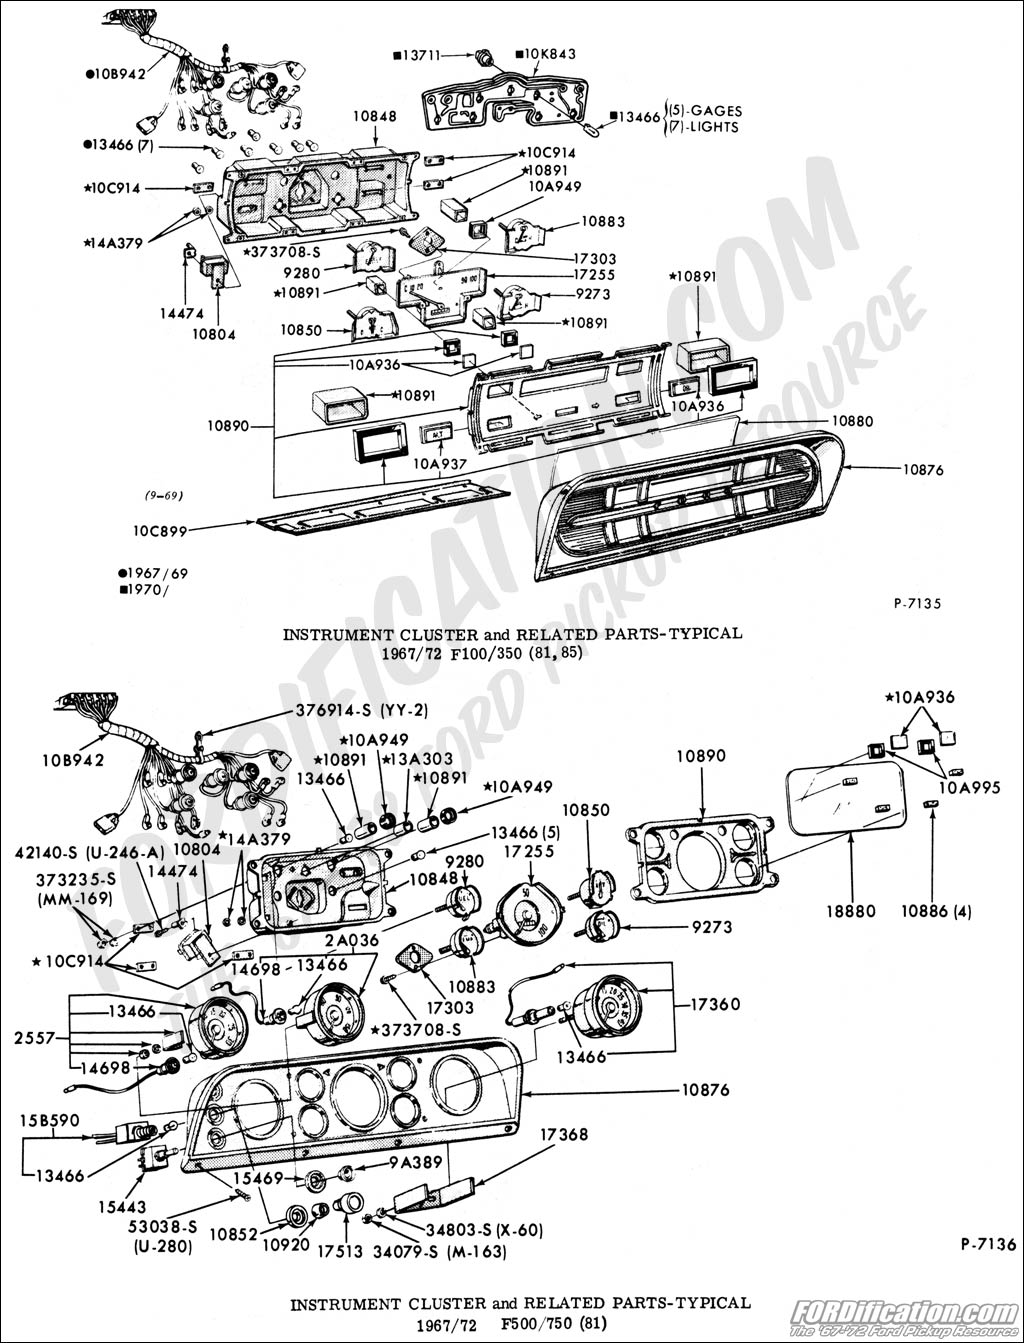 72 ford f100 dash wiring diagram 2009 vw tiguan radio truck part numbers instrument panel and related